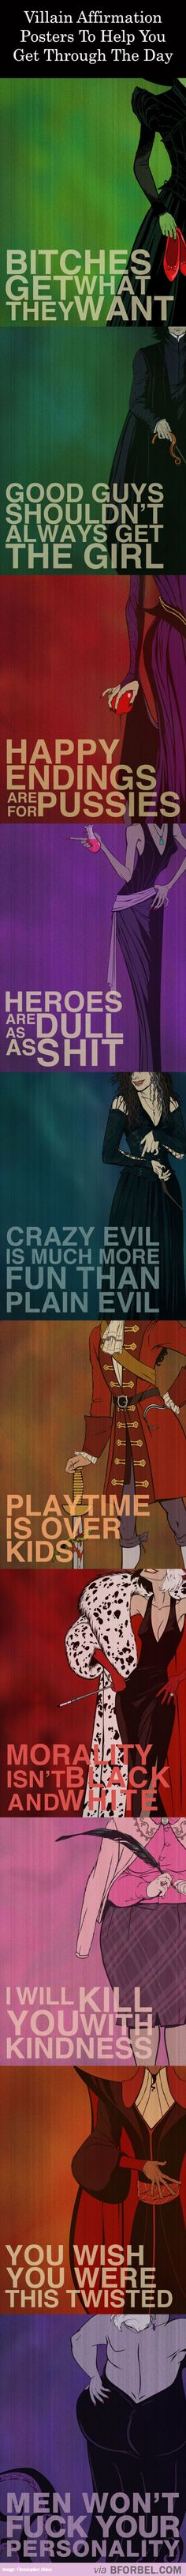 10 Villain Affirmation Posters With Real Life Advice…